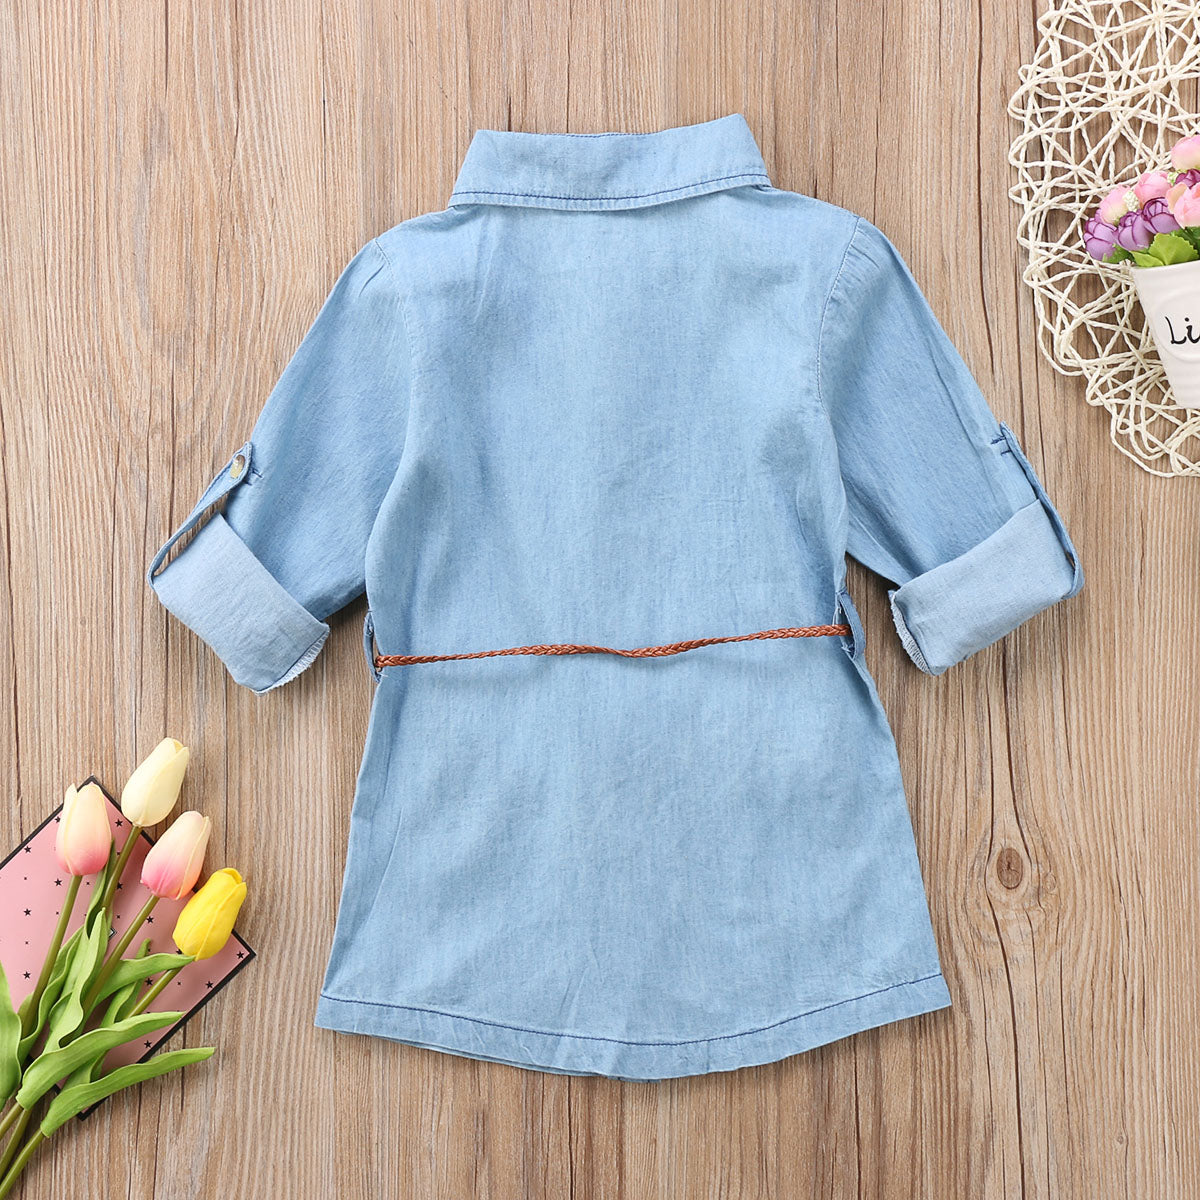 Denim Short Mini Dresses 2T-6